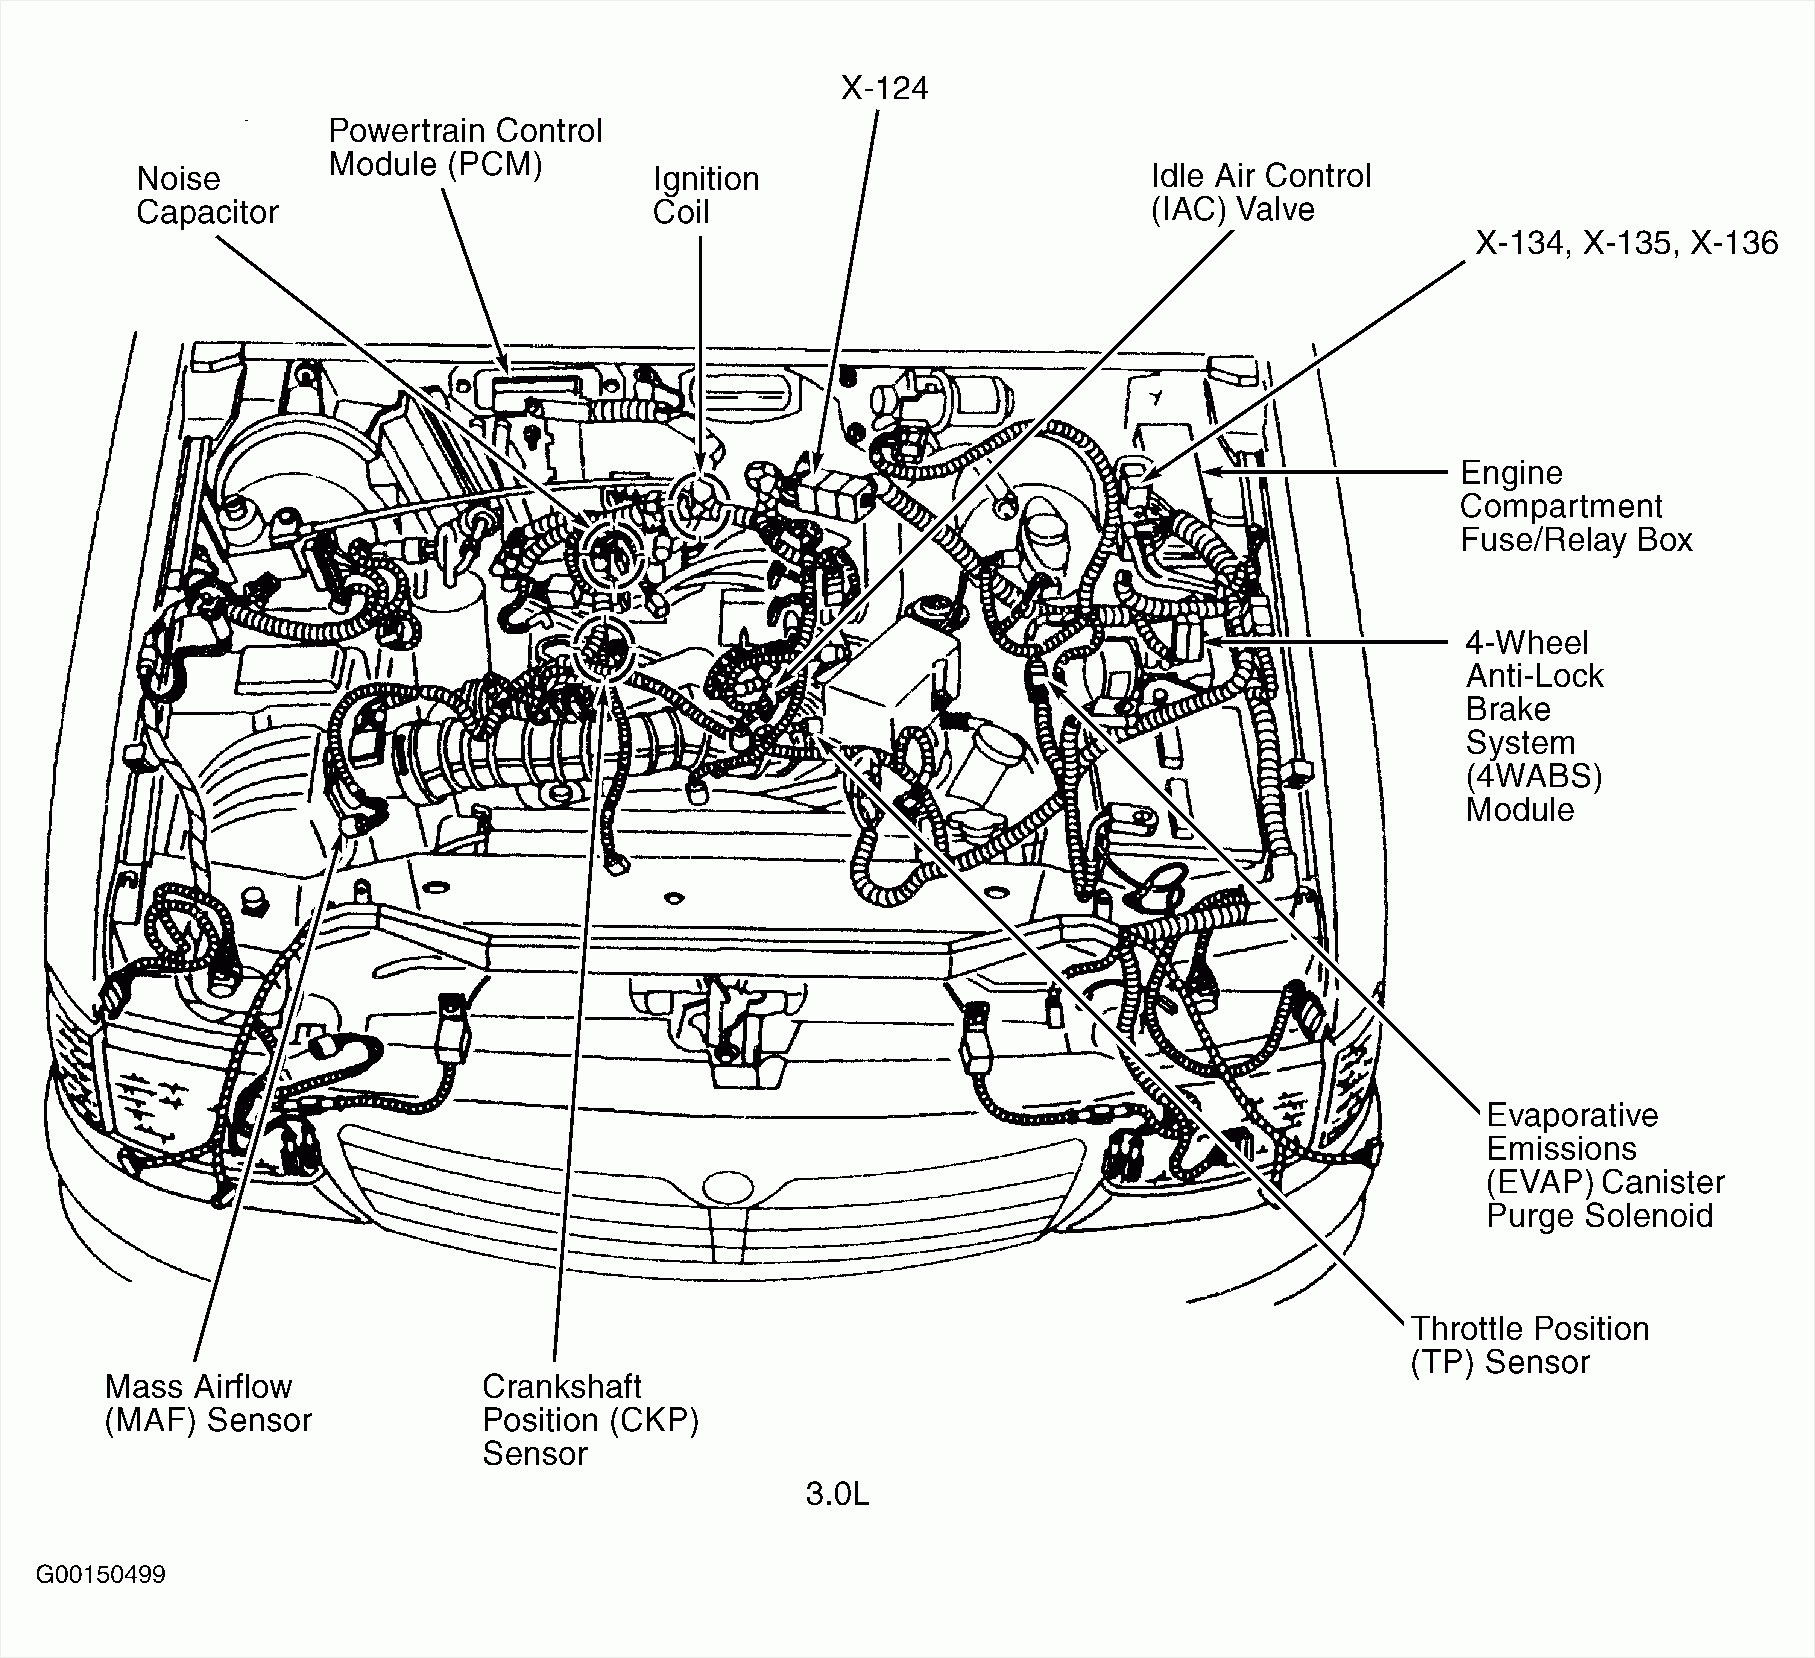 1991 S10 Engine Diagram Archive Of Automotive Wiring Chevy 4 3 Worksheet And U2022 Rh Bookinc Co 43